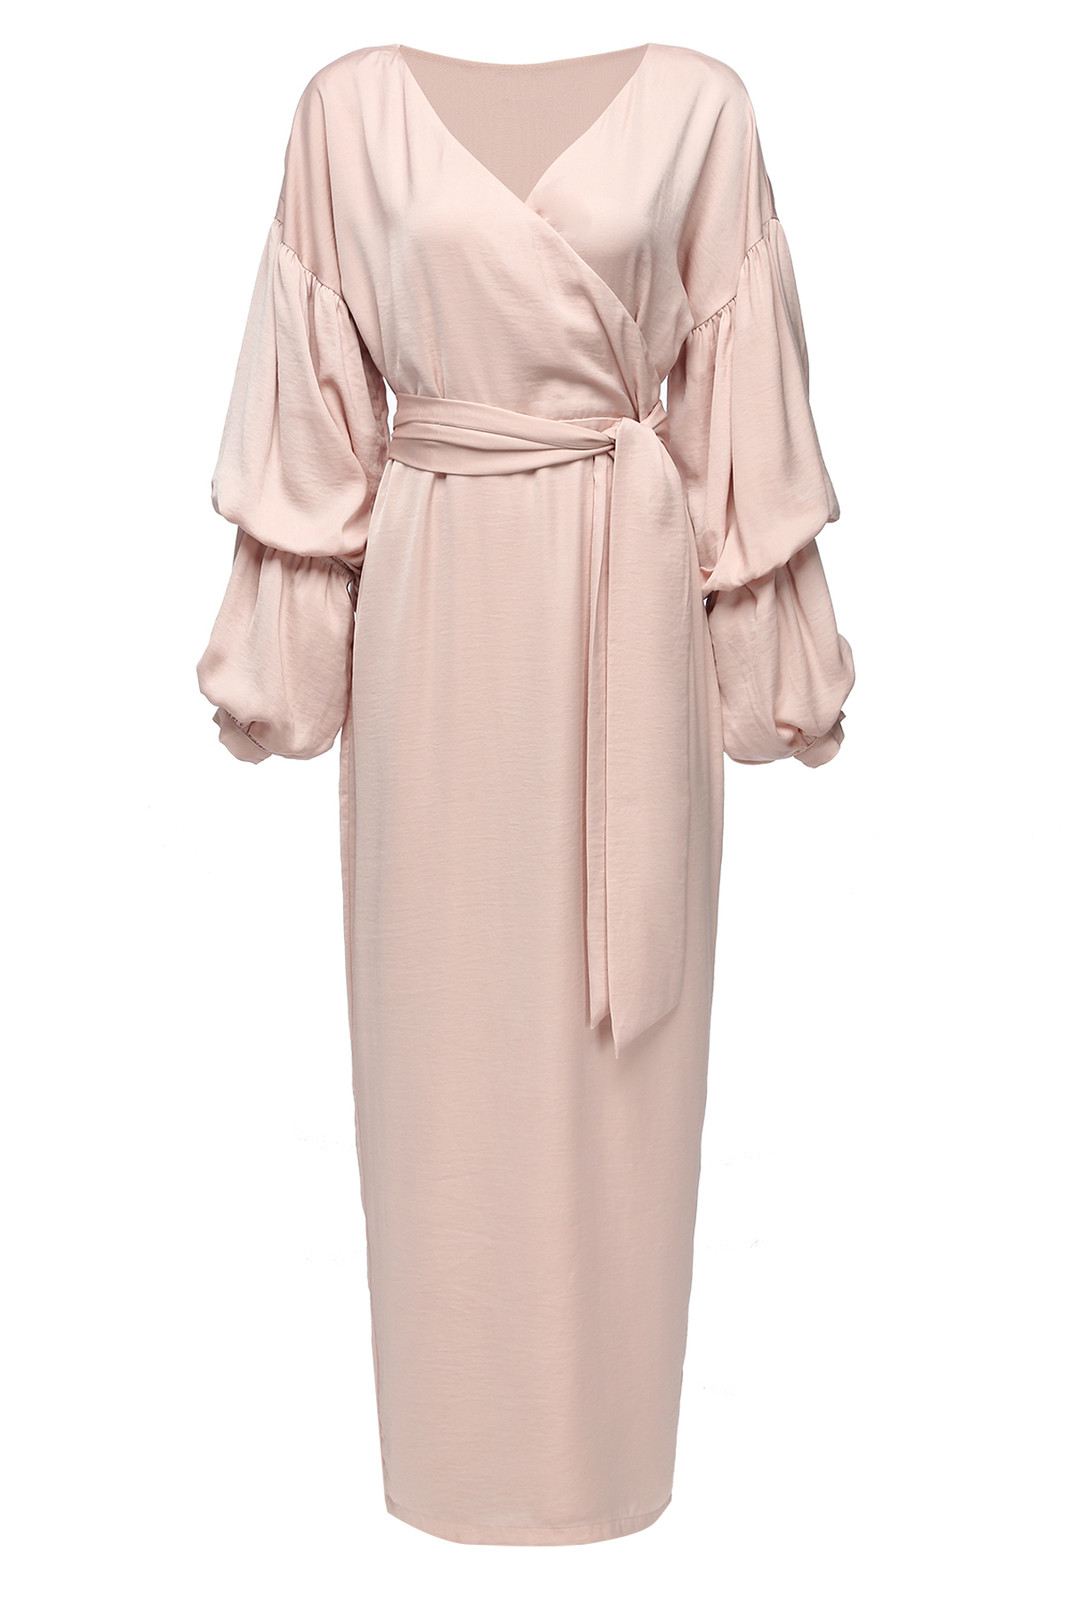 2018 wholesale Abaya muslim dresses  Pink with belt